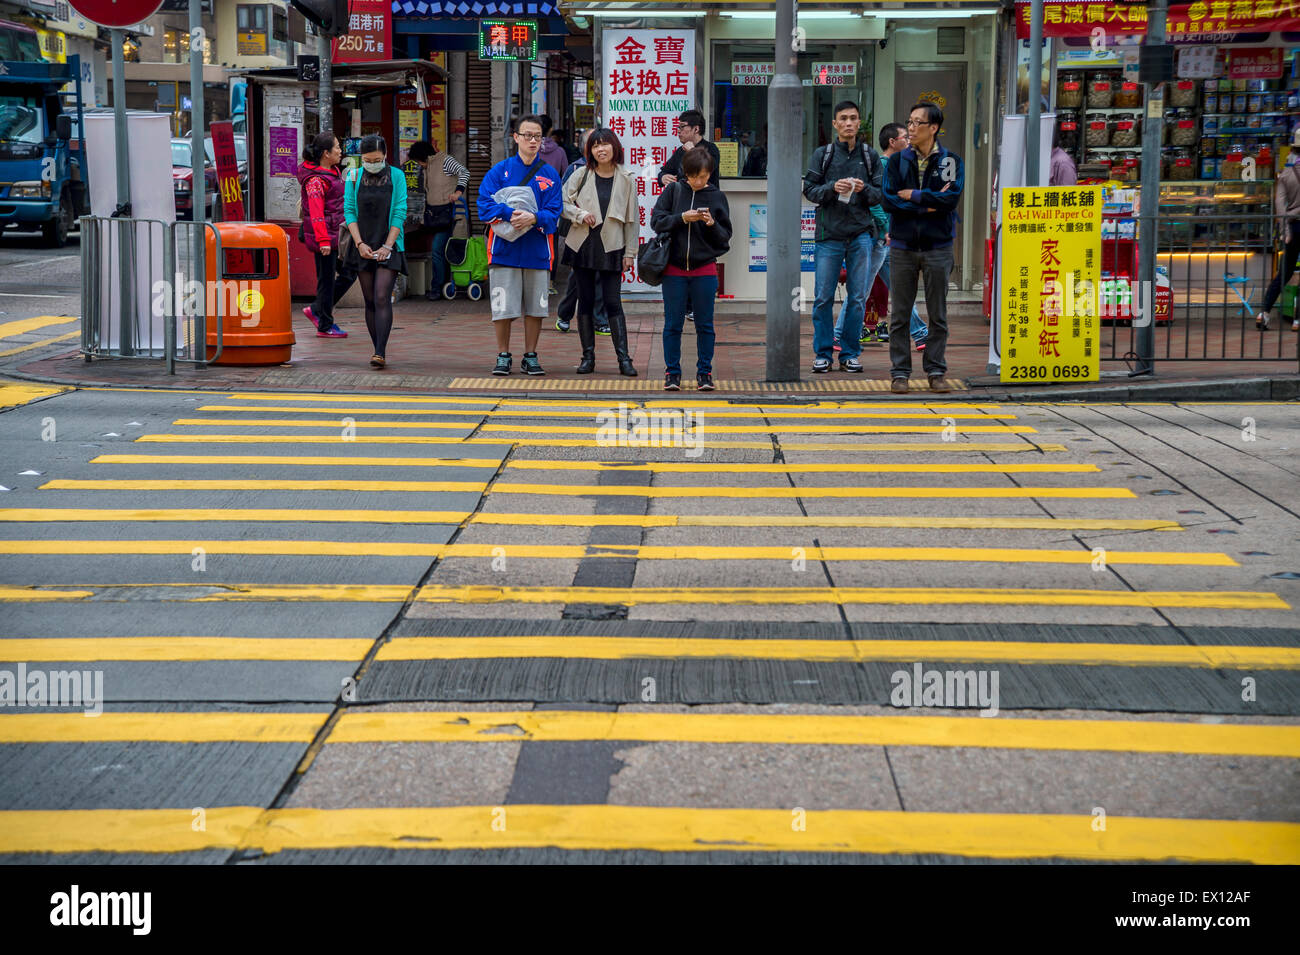 Pedestrians waiting to cross the street in Hong-Kong - Stock Image